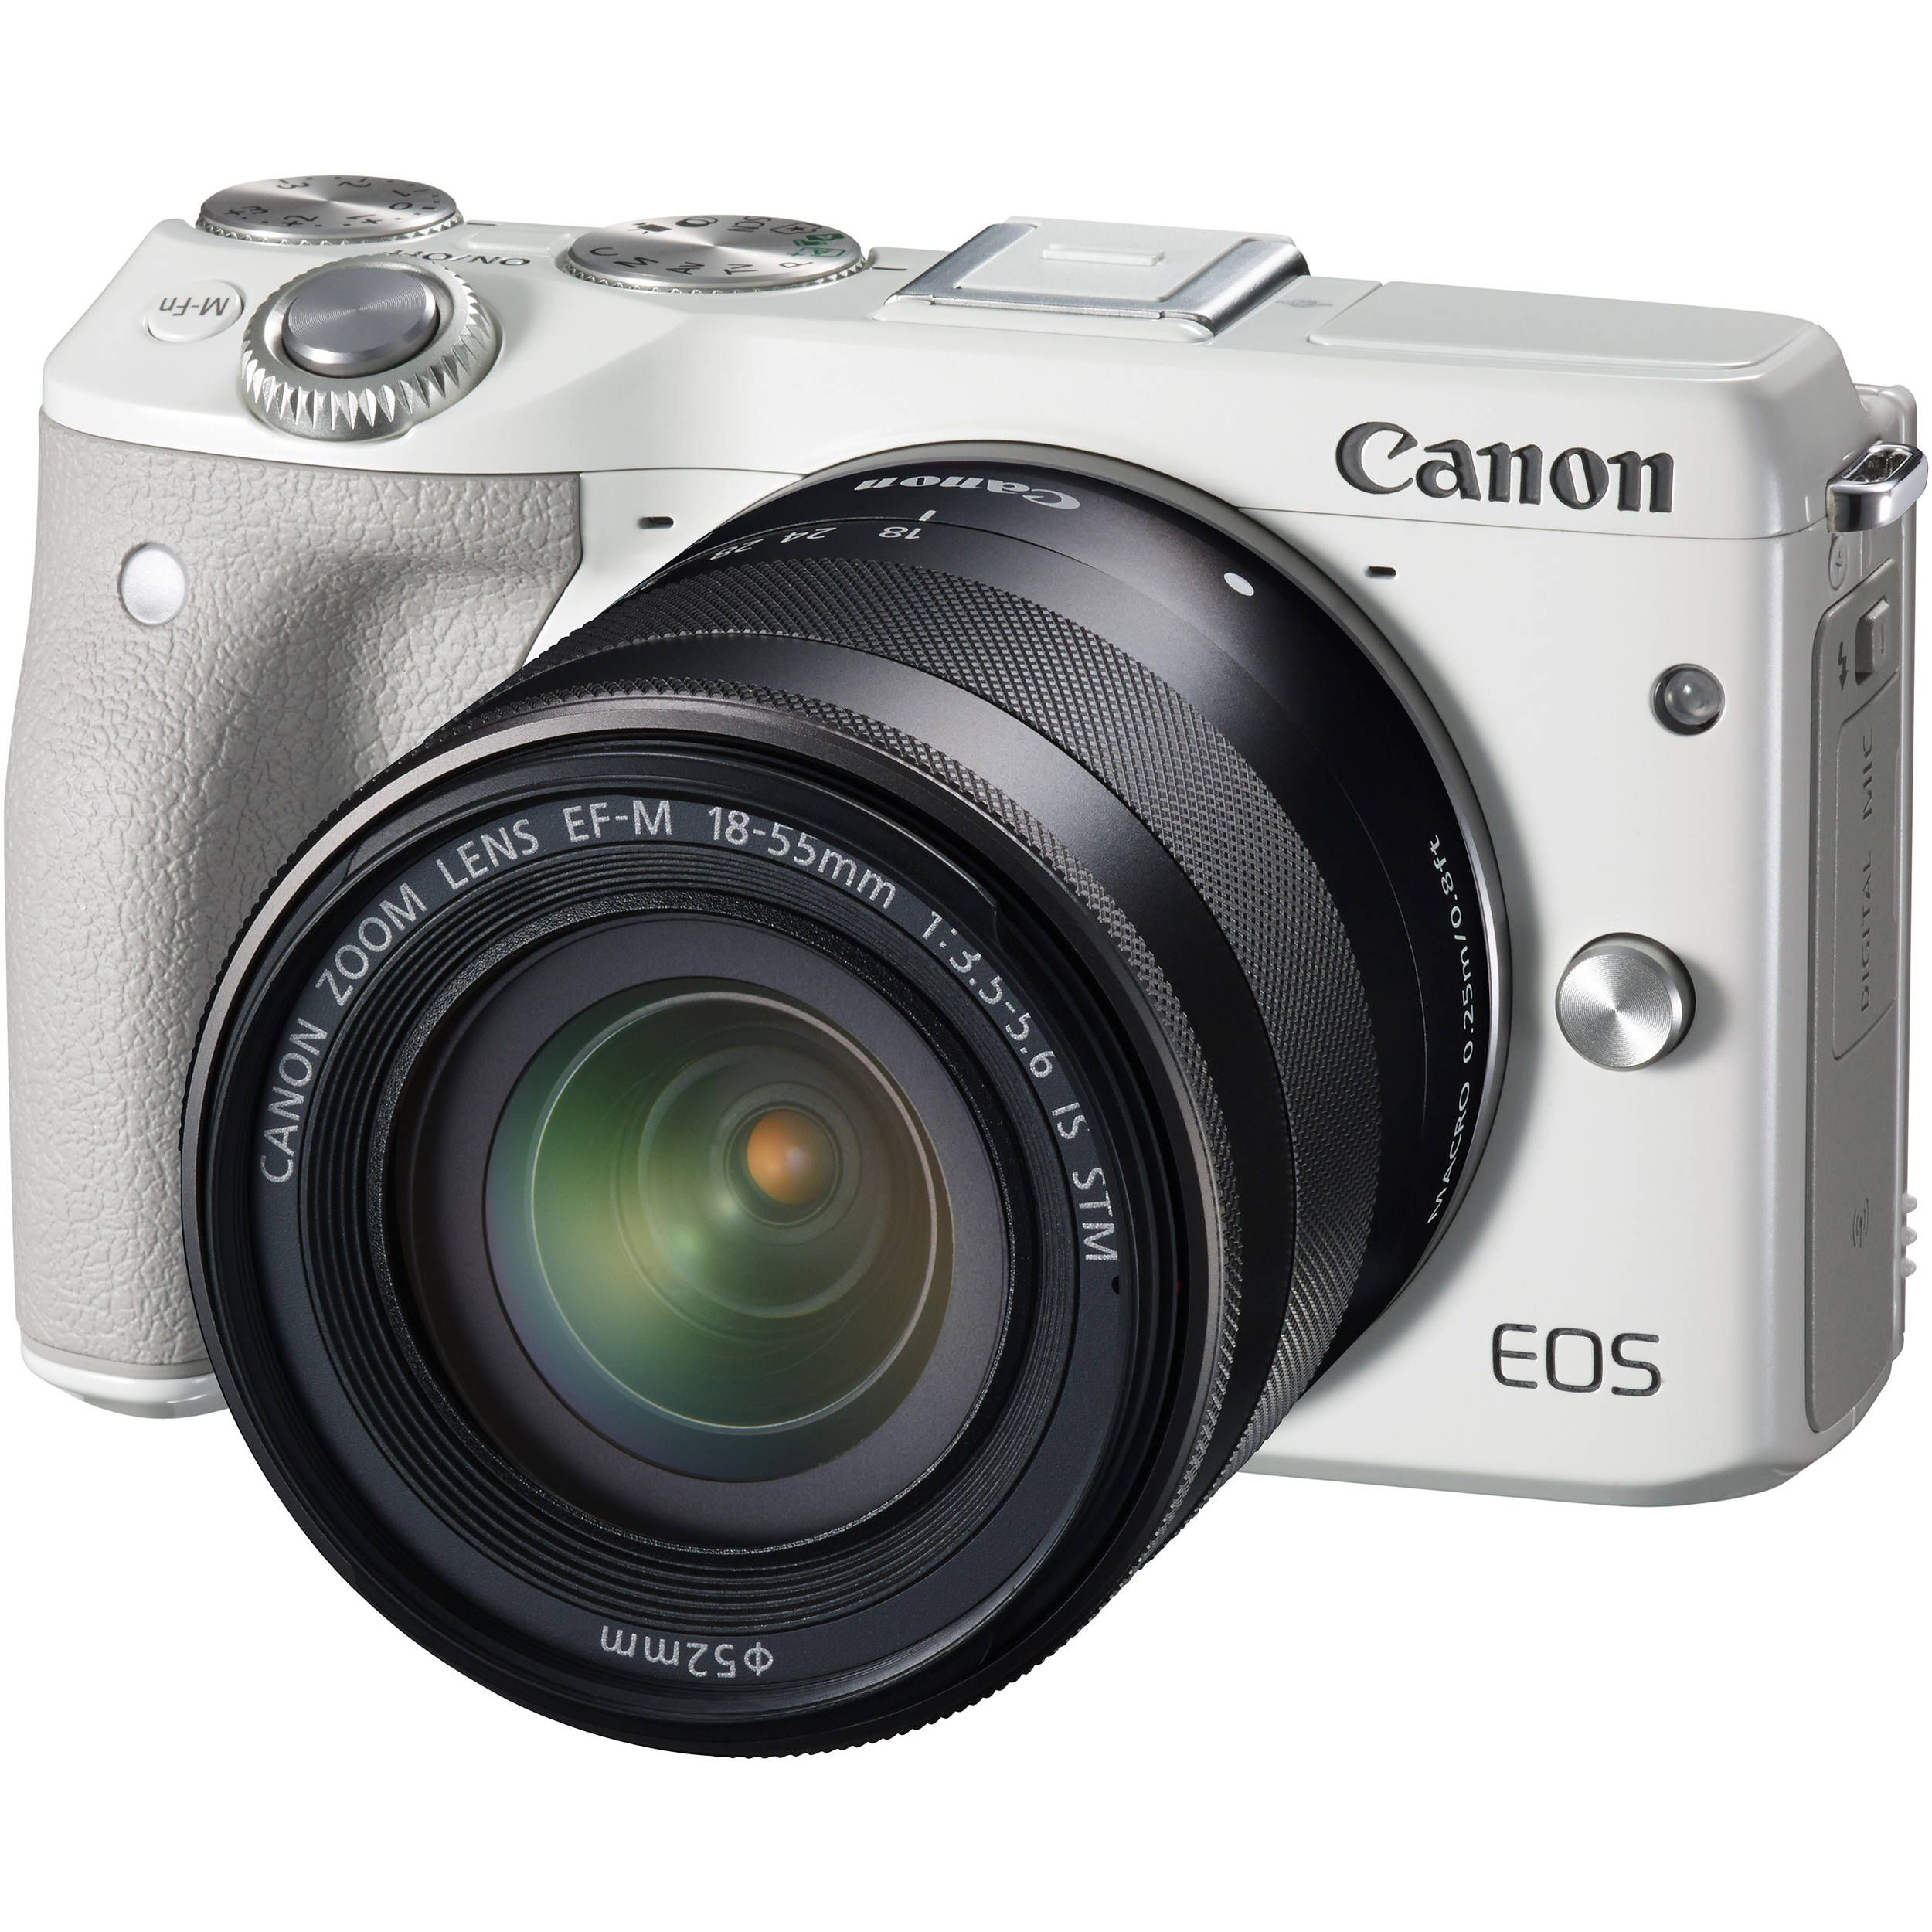 Canon EOS M3 Mirrorless Digital Camera with 18-55mm Lens (White)